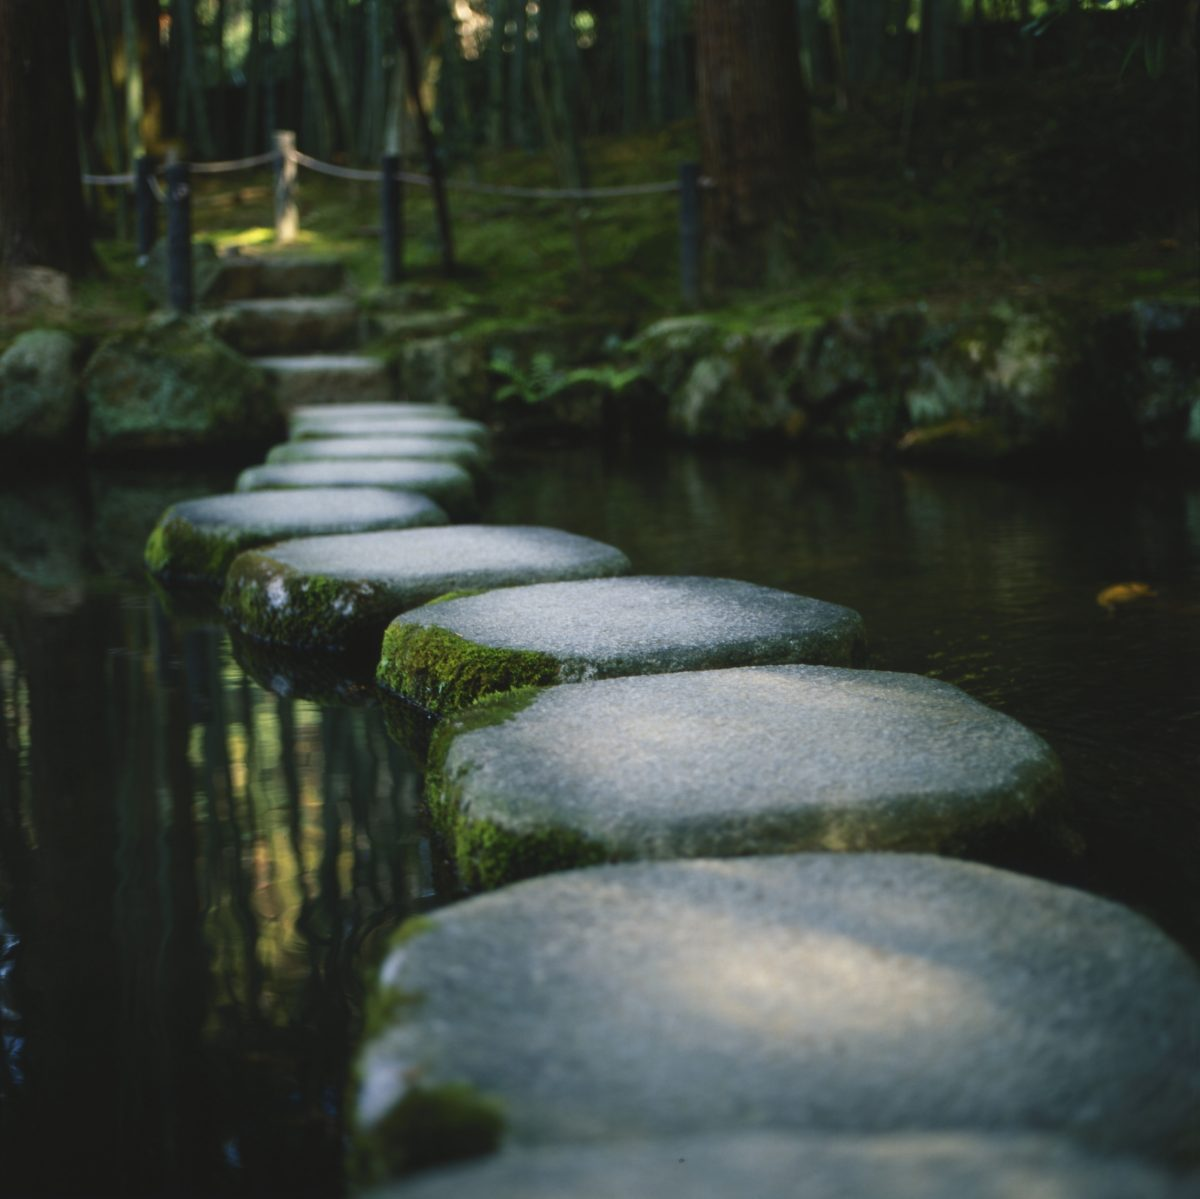 Image of stones on a water signifying the emotional release therapy services offered by Daniel. Daniel is an experienced practitioner who provides the following services: emotional integration therapy, emotional clearing therapy releasing stuck emotions, emotional release counselling & releasing trapped emotions. Daniel has been working with a lot of people and helped them in their journey of healing emotional pain, clearing negative emotions, letting go of grief, anger release & releasing negative emotions. His emotional detox therapy services are highly acknowledged as some of the best.